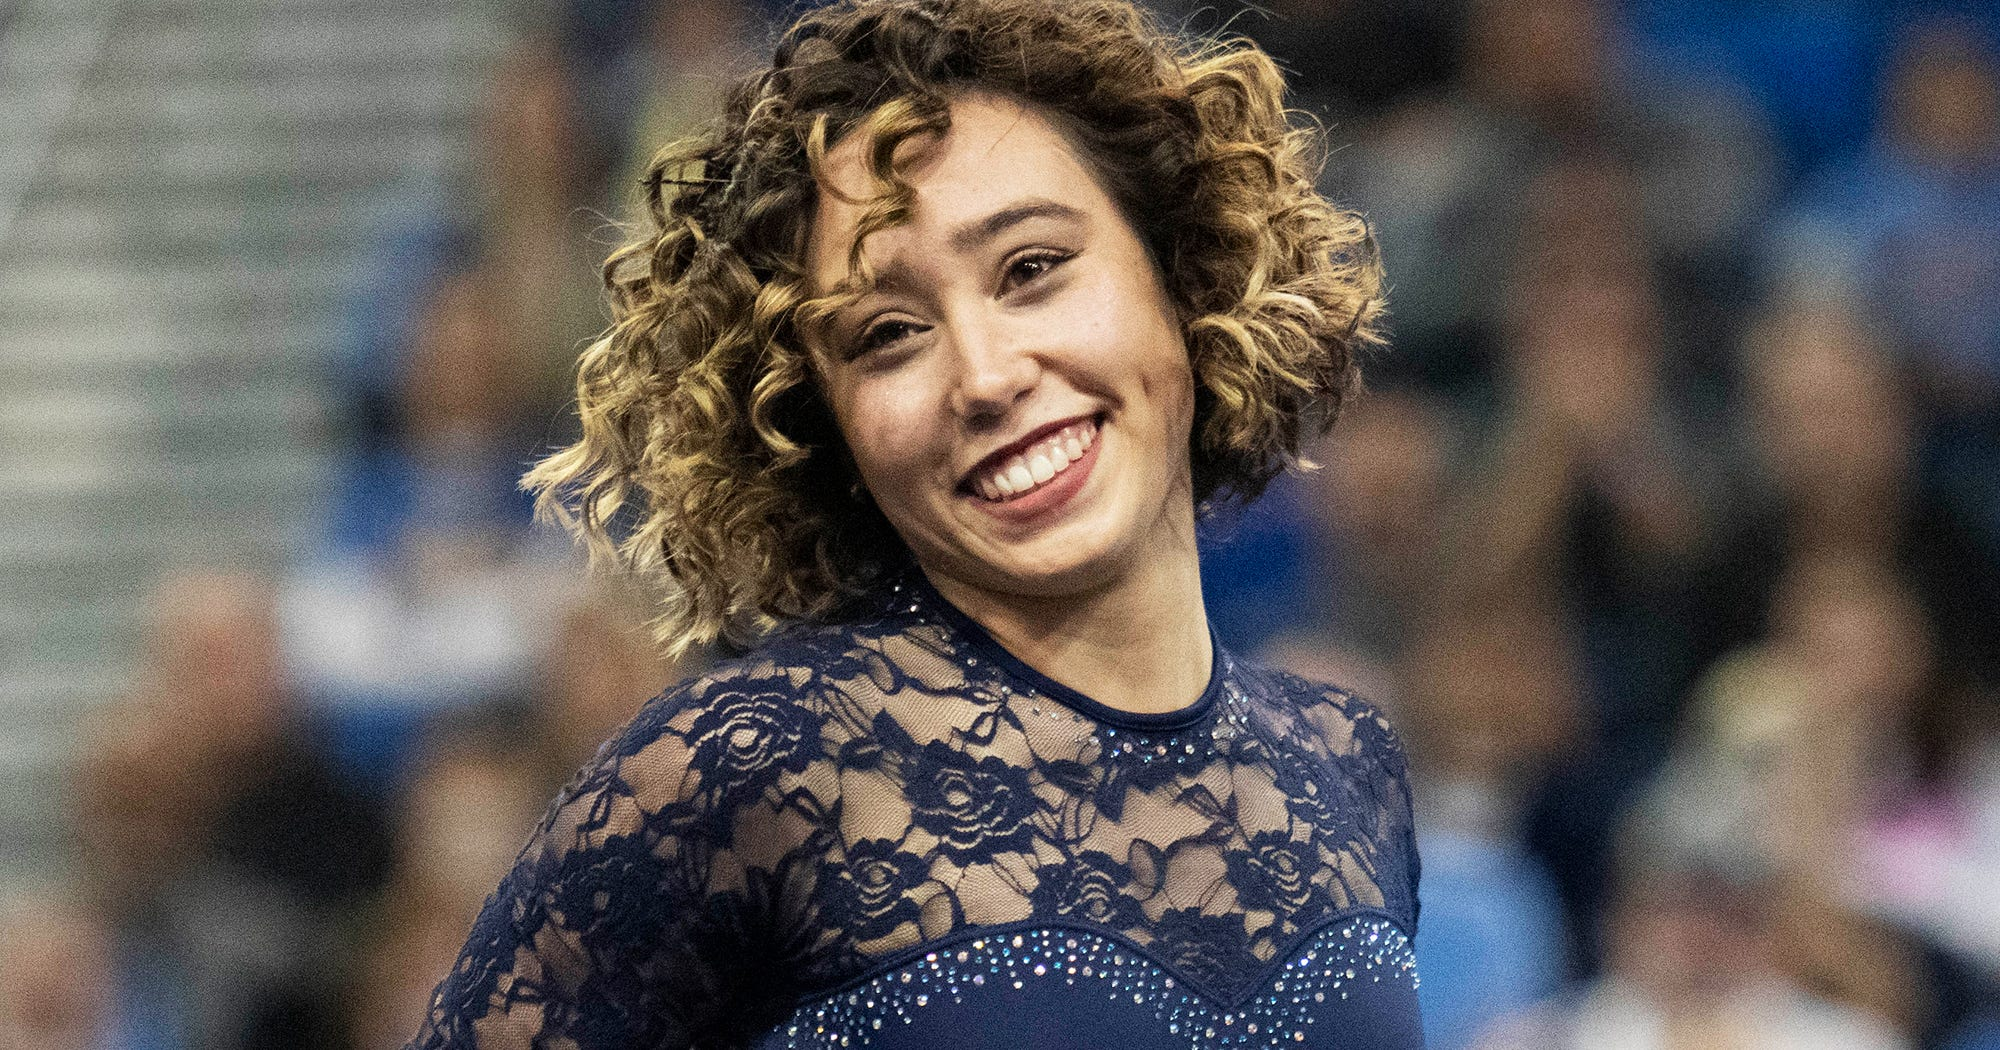 Katelyn Ohashi Is Back At It Again With Her Gymnastics Floor Routine